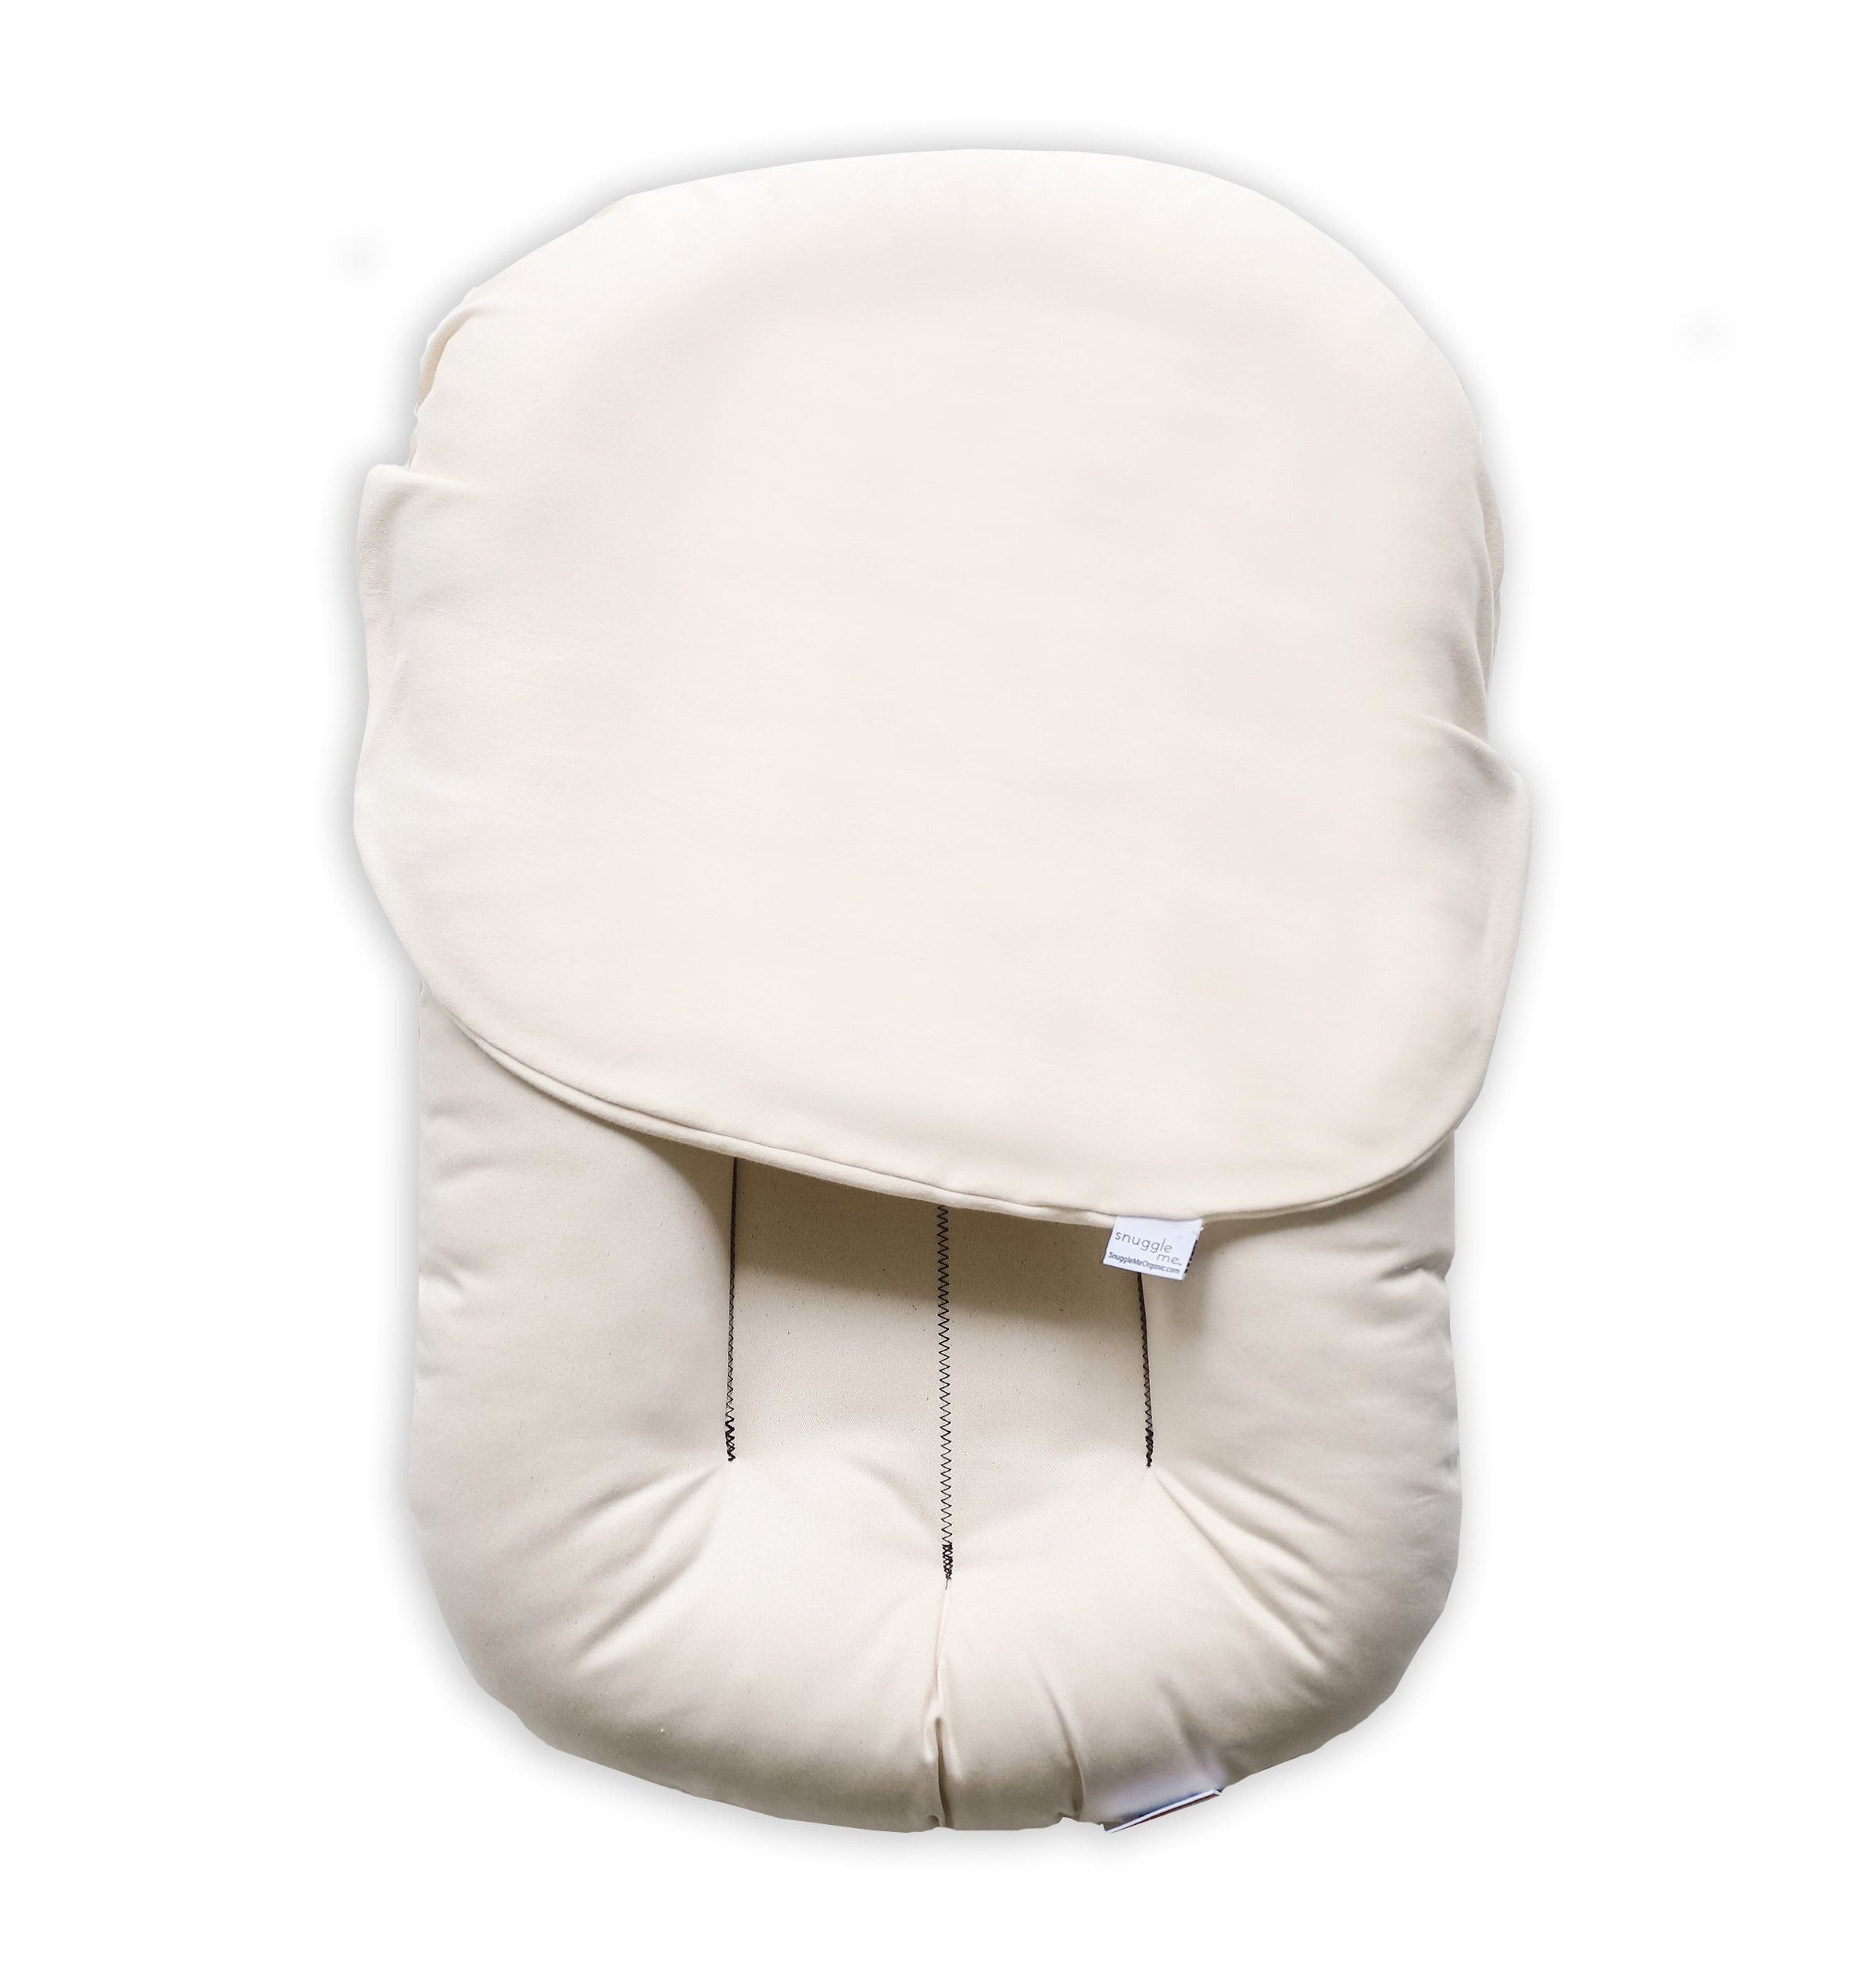 Snuggle Me Organic | Direct from Manufacturer | No Travel Bag | Organic Cotton, Virgin Poly Fiber Fill | Includes Lounger and Cover only